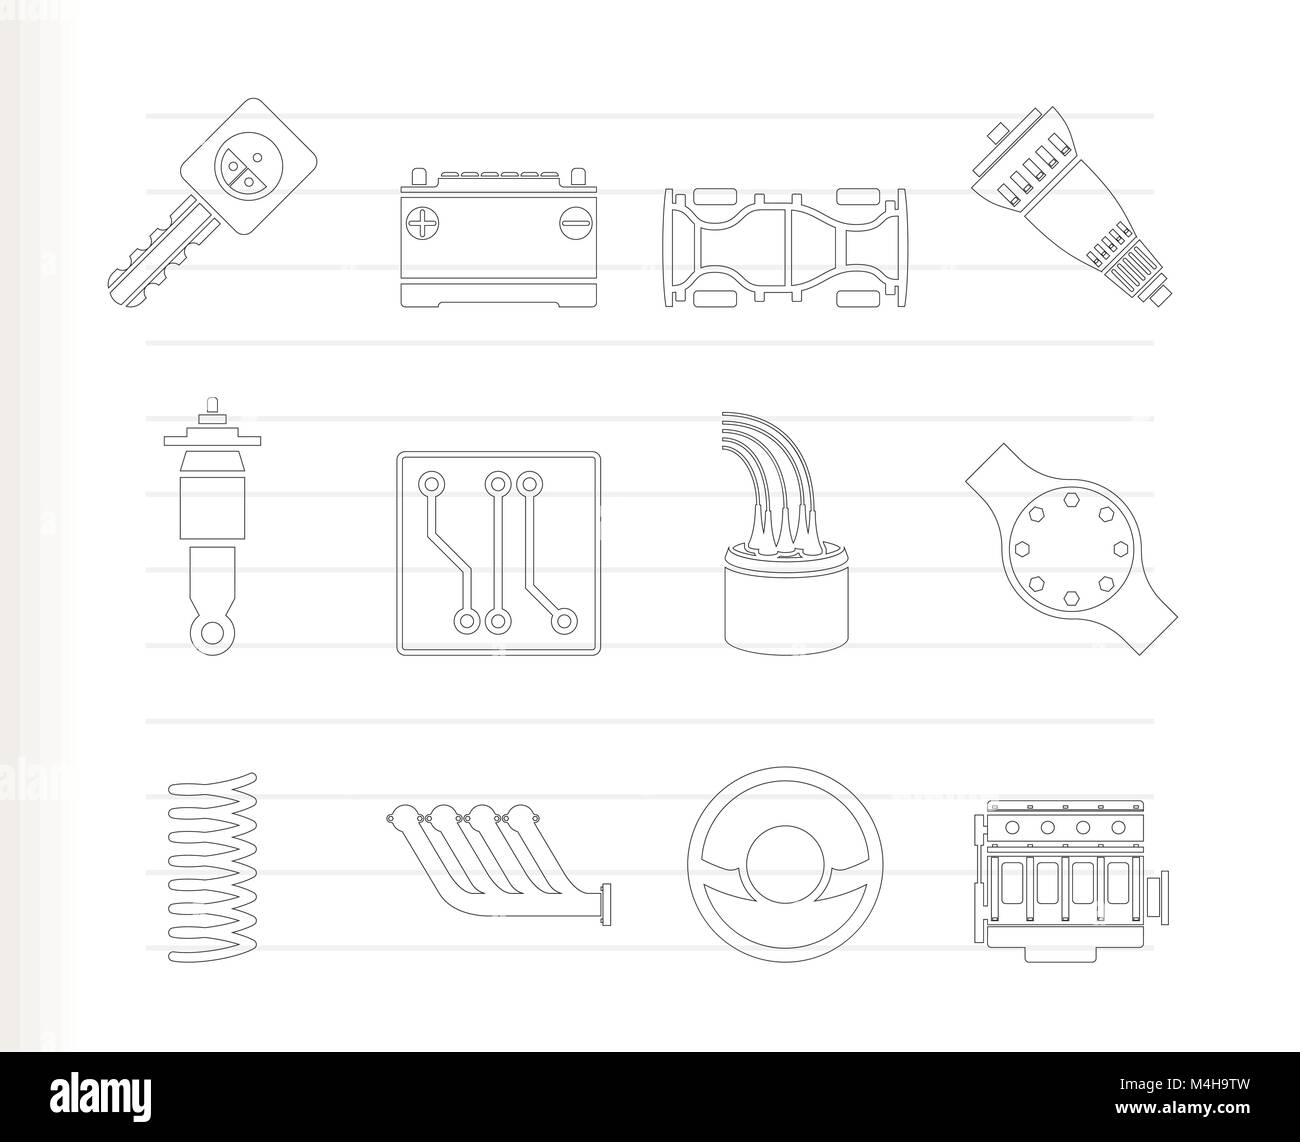 Realistic Car Parts and Services icons - Vector Icon Set 2 Stock Vector